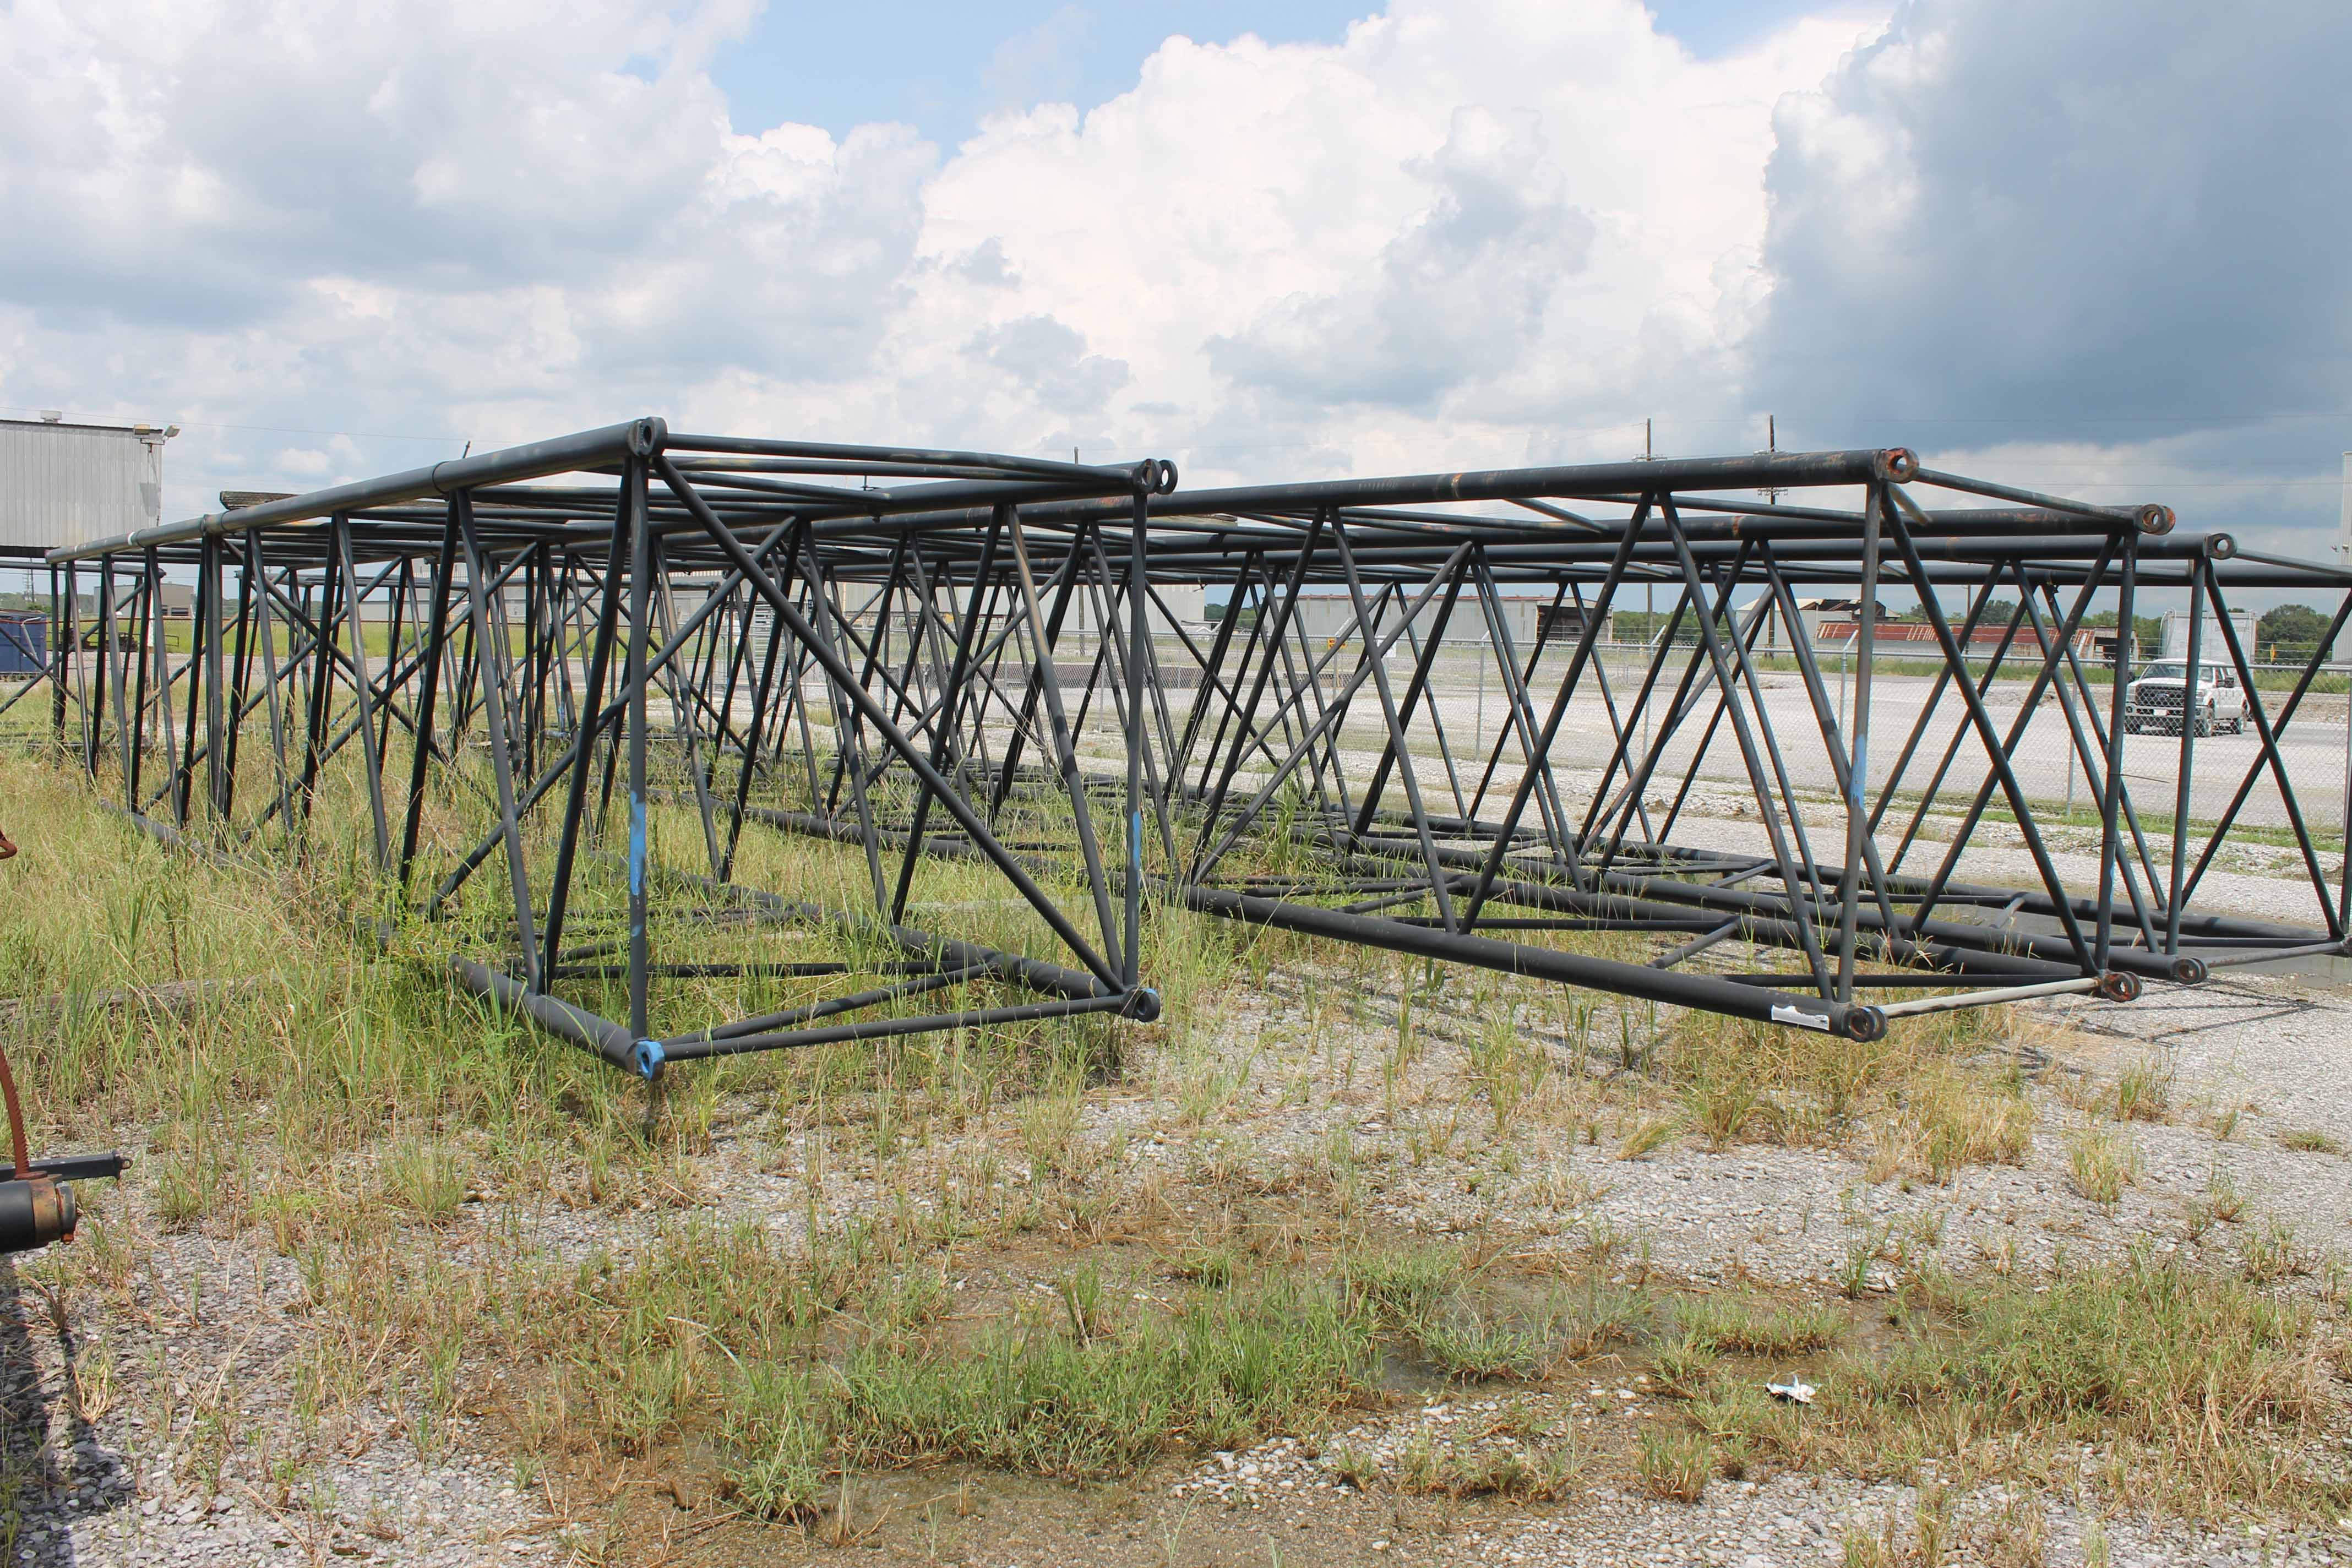 Lot 2 - Lot of (6) Boom Sections for American Crane 9260 Crawler Crane, Model Heavy 77: (2) 50', (1) 40', (